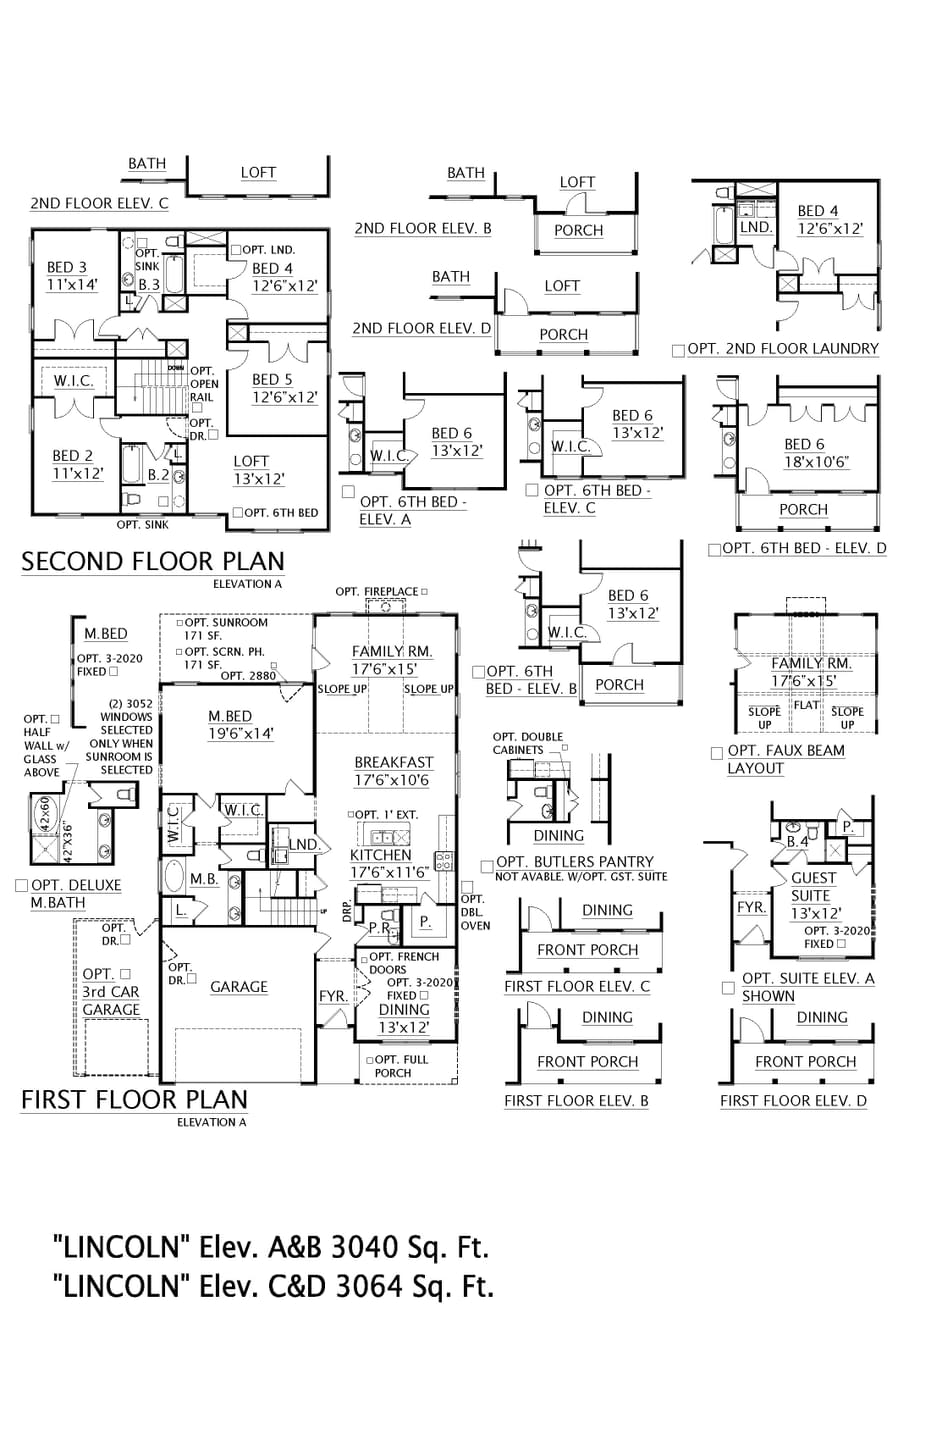 Taylors New Home Lincoln Floorplan